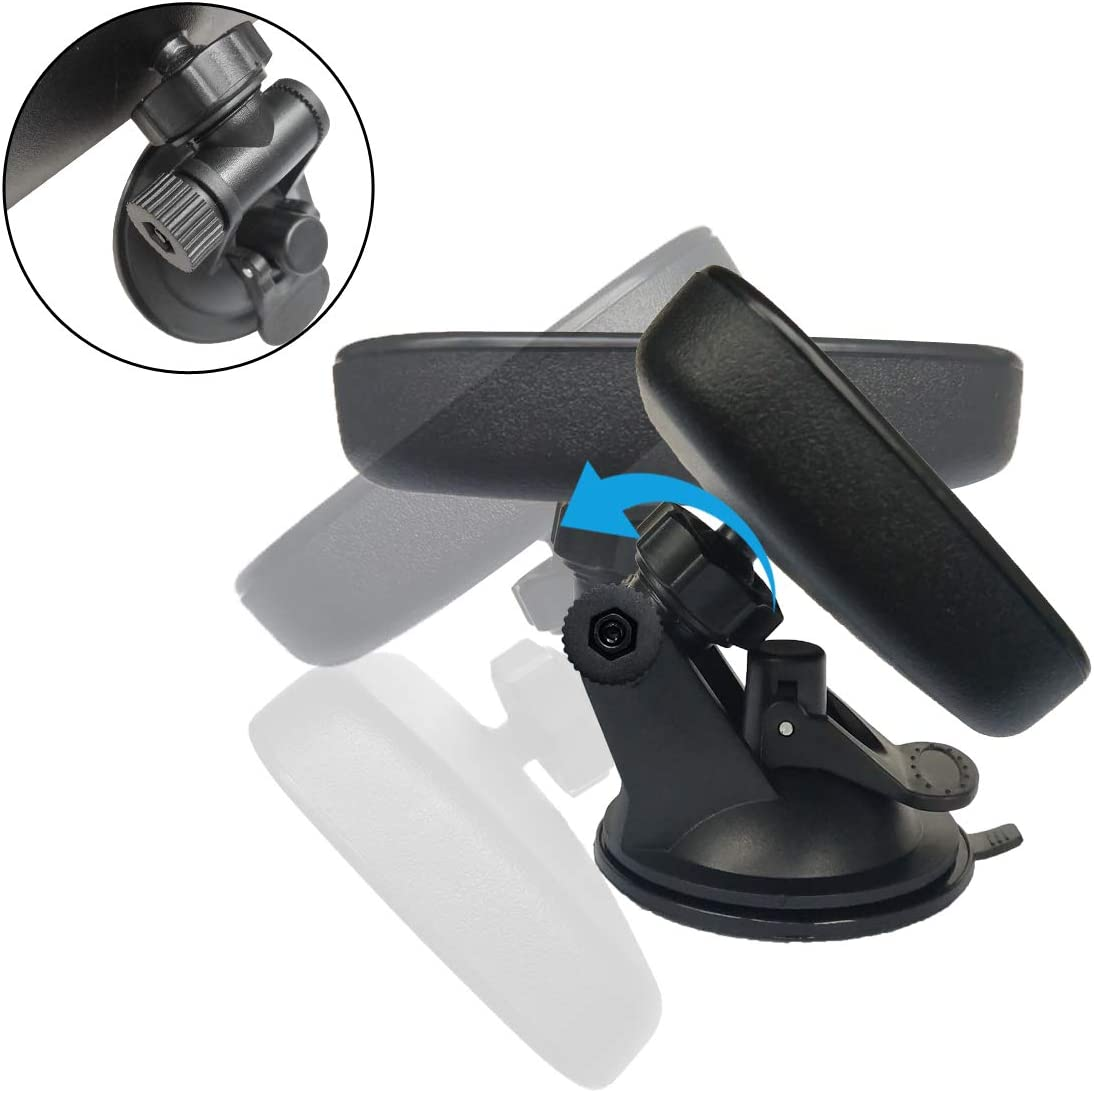 240mm Wontolf Rear View Mirror Anti-Glare Suction Cup Rear View Mirror Universal Interior Rearview Mirror for Car Truck SUV 9.5